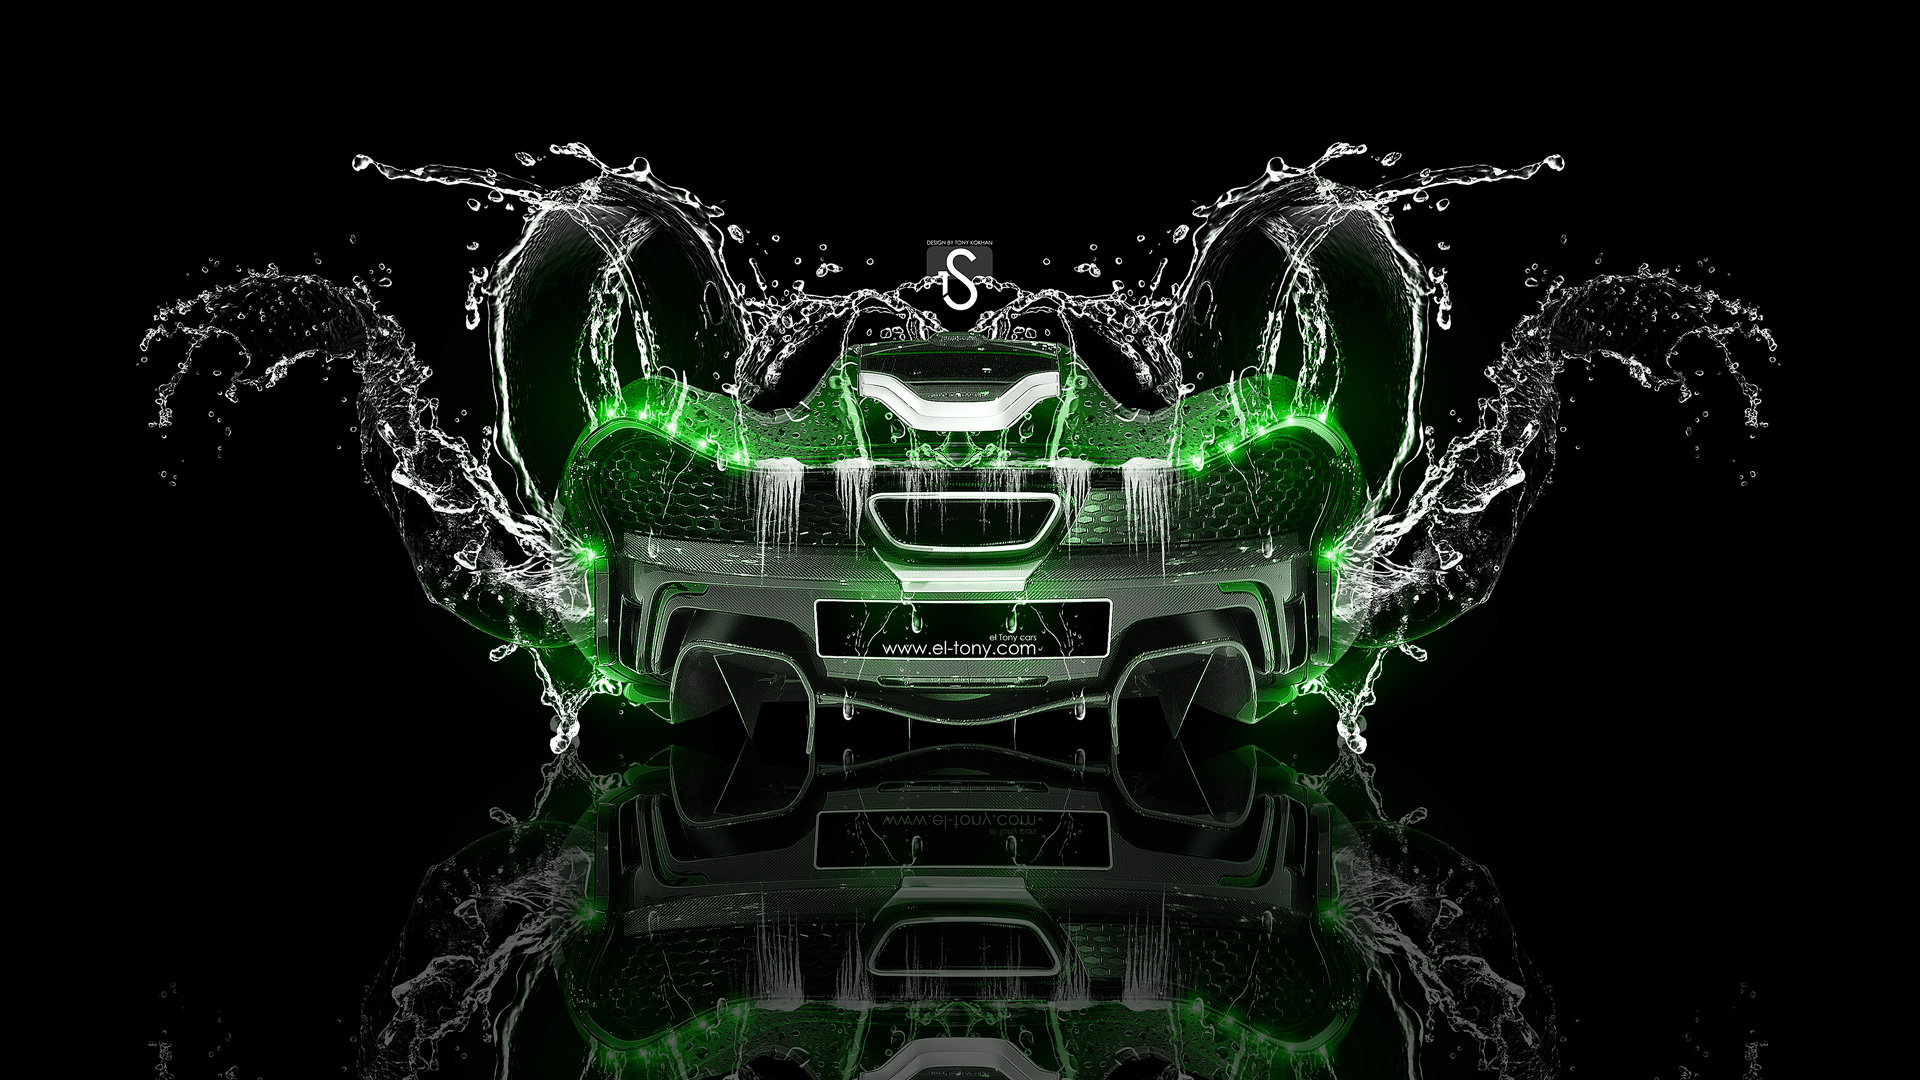 Yfzrlt likewise Nissan Z Ice Water City Car Blue Neon Hd Wallpapers Design By Tony Kokhan   El Tony besides Mclaren Mp C Super Abstract Car Blue Neon Hd Wallpapers Design By Tony Kokhan   El Tony in addition F Formula Fire City Car Hd Wallpapers Design By Tony Kokhan   El Tony besides Scania R Truck Fantasy Nixie City Pink Neon By Tony Kokhan   El Tony. on mclaren p1 blue fire